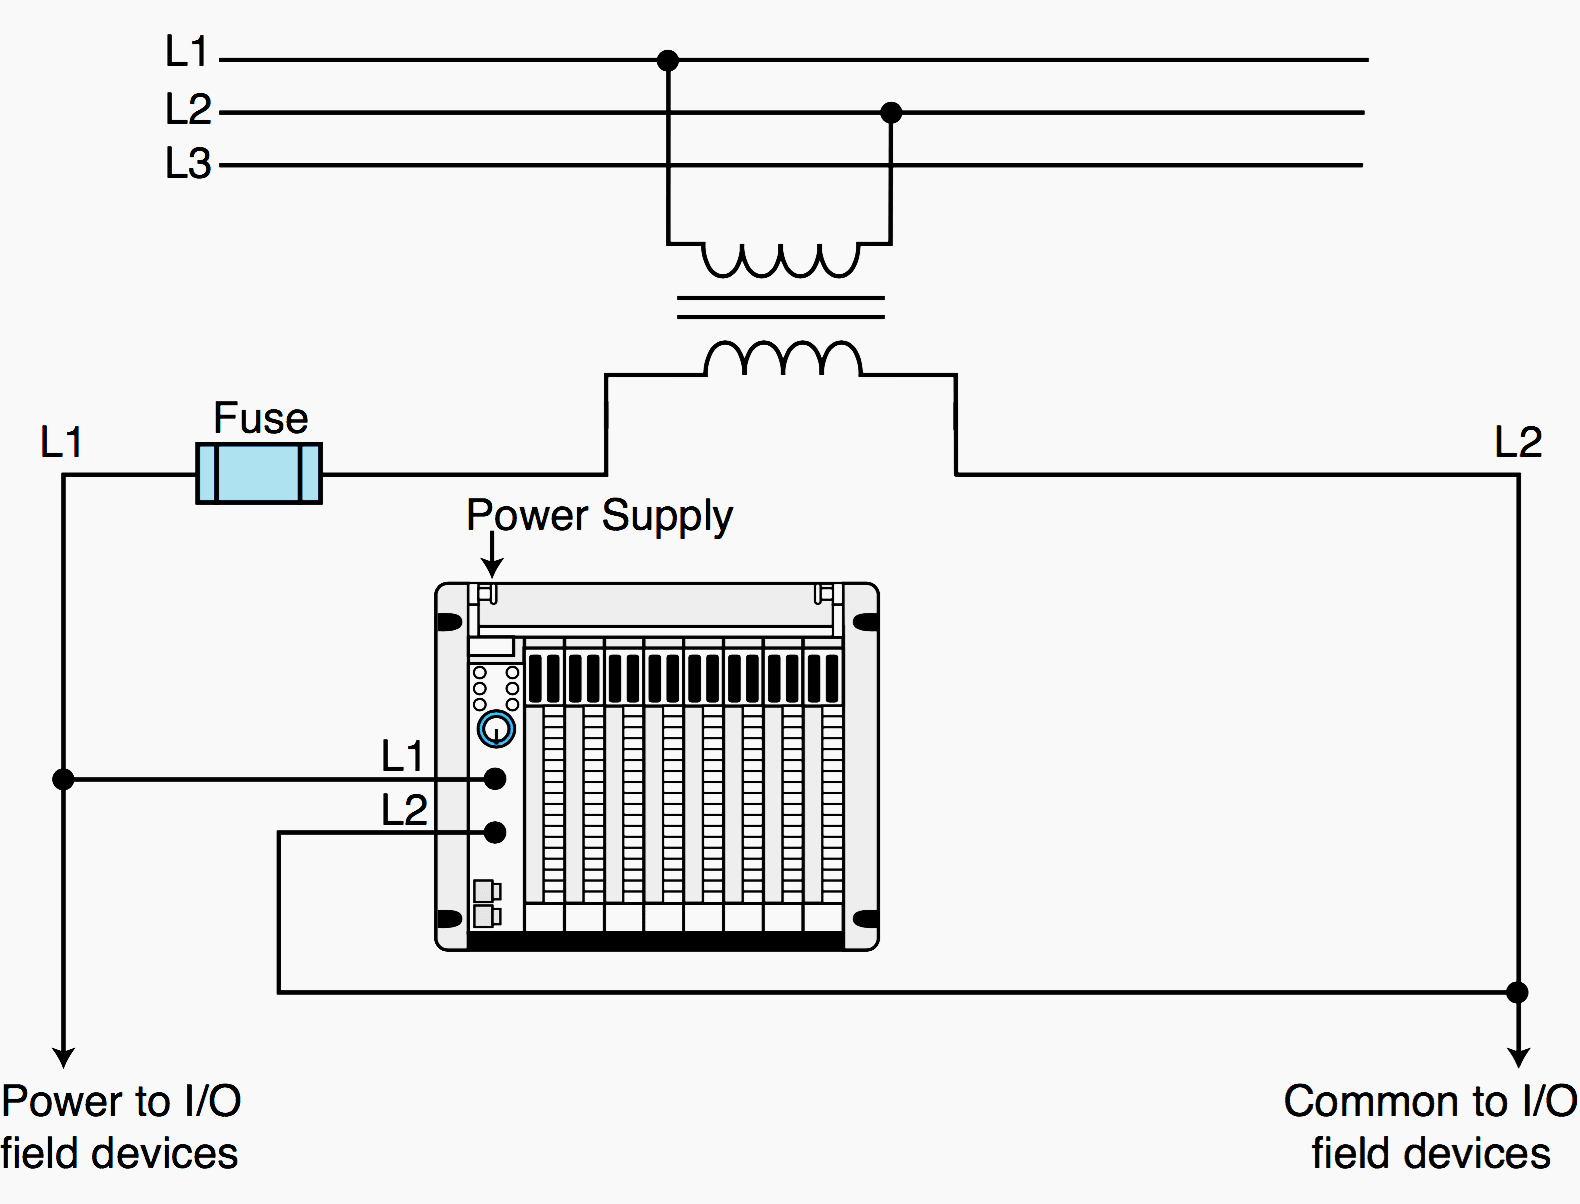 hight resolution of system power supply and i o devices with a common ac source